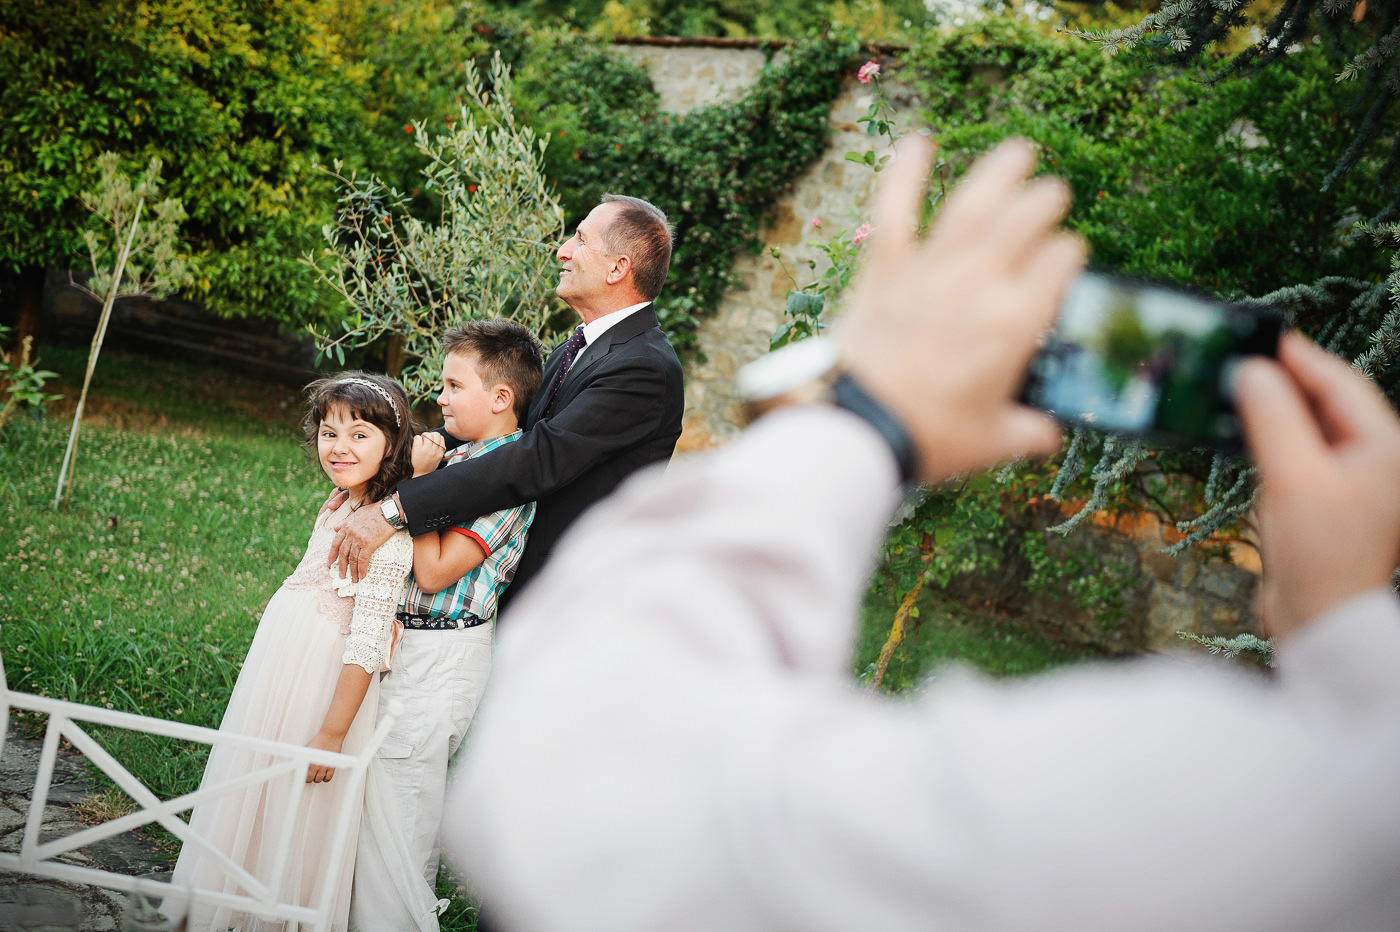 Nita+Genci wedding-70